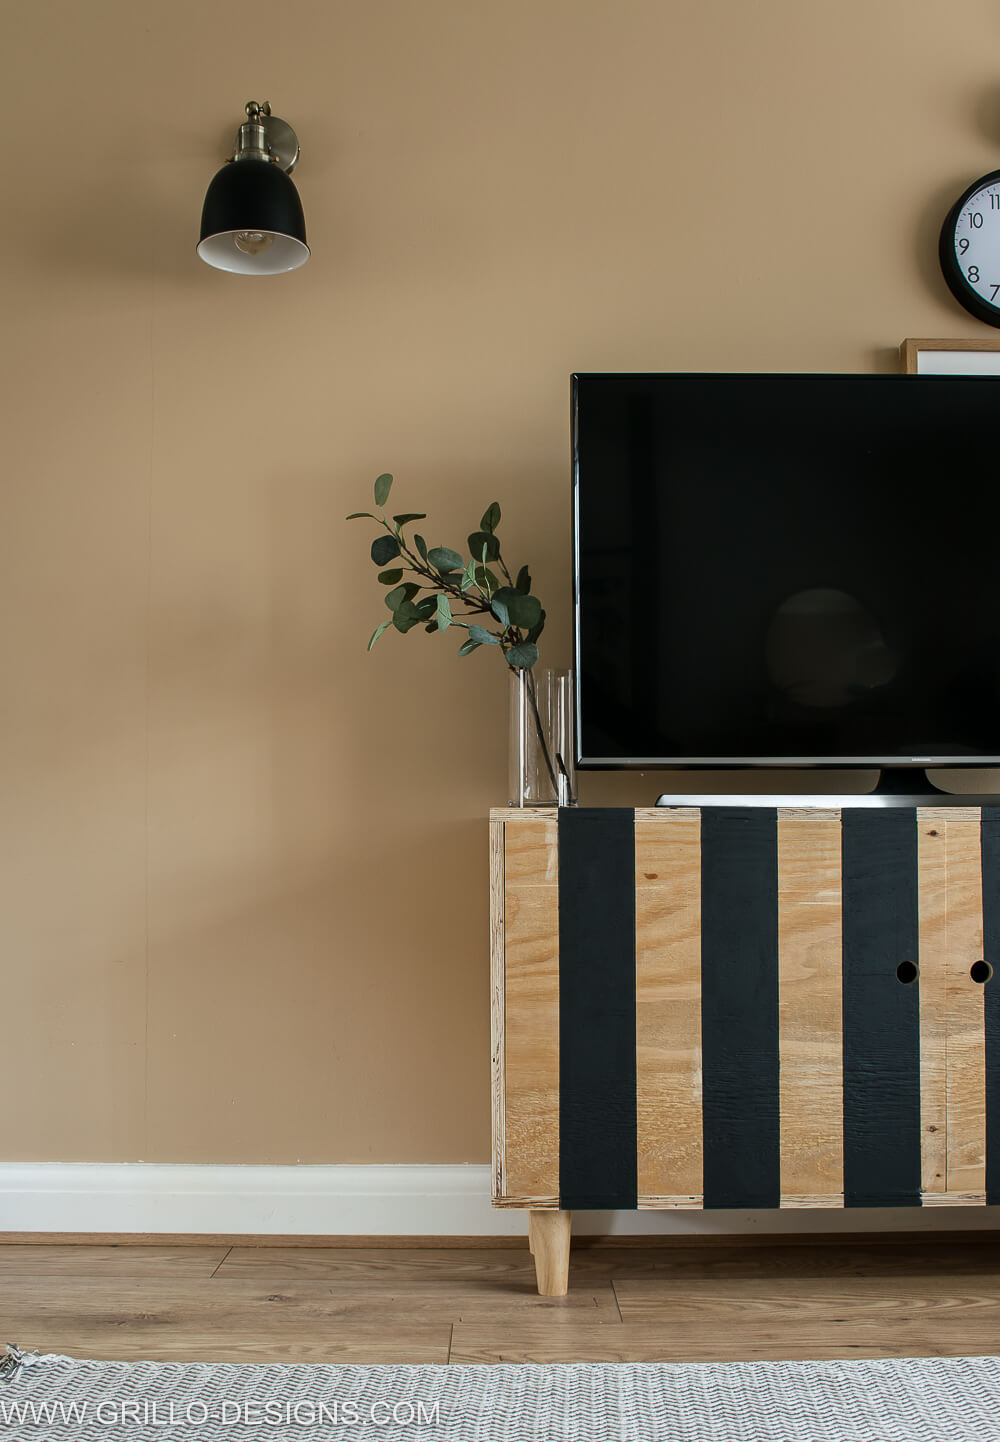 How to make a small compat diy tv stand in a weekend! #diytvstand #tvstandideas #tvstandideasforlivingroom #grillodesigns